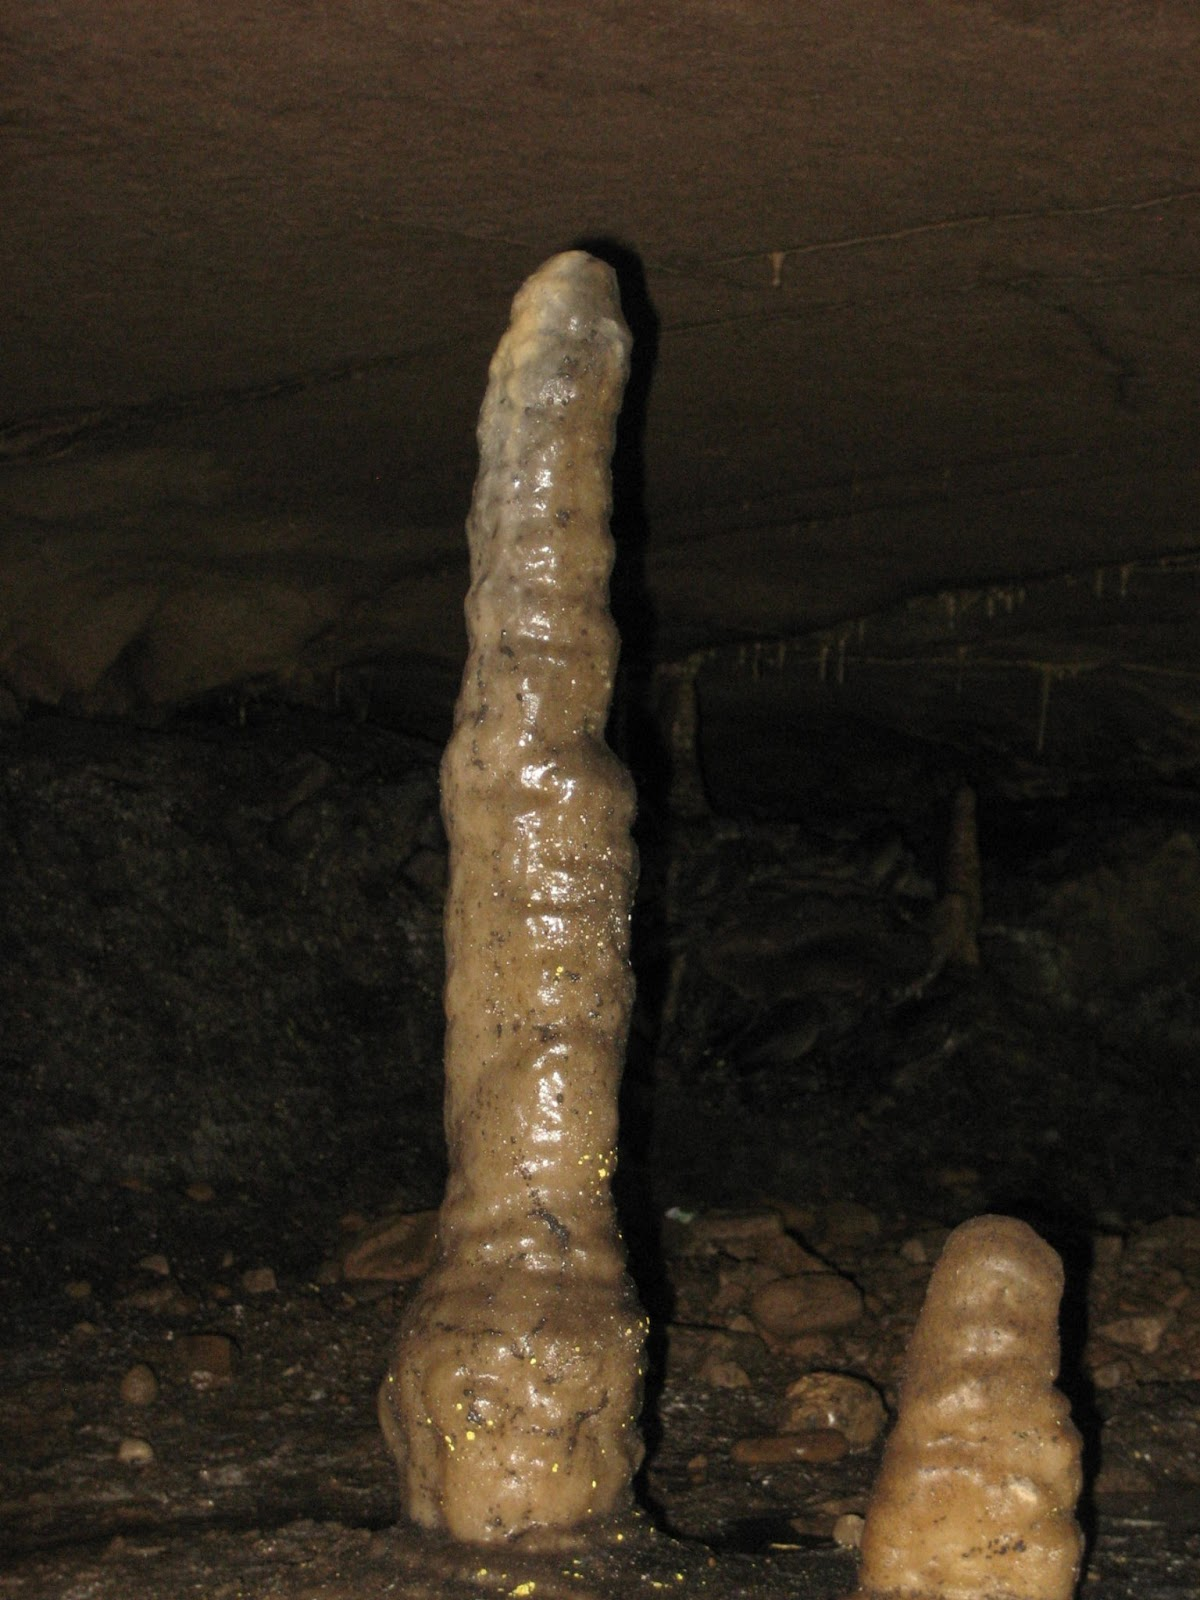 The Skittles in Ingleborough Cave and the Buddha (below) are fine examples of well-developed stalagmites. Stephen Oldfield